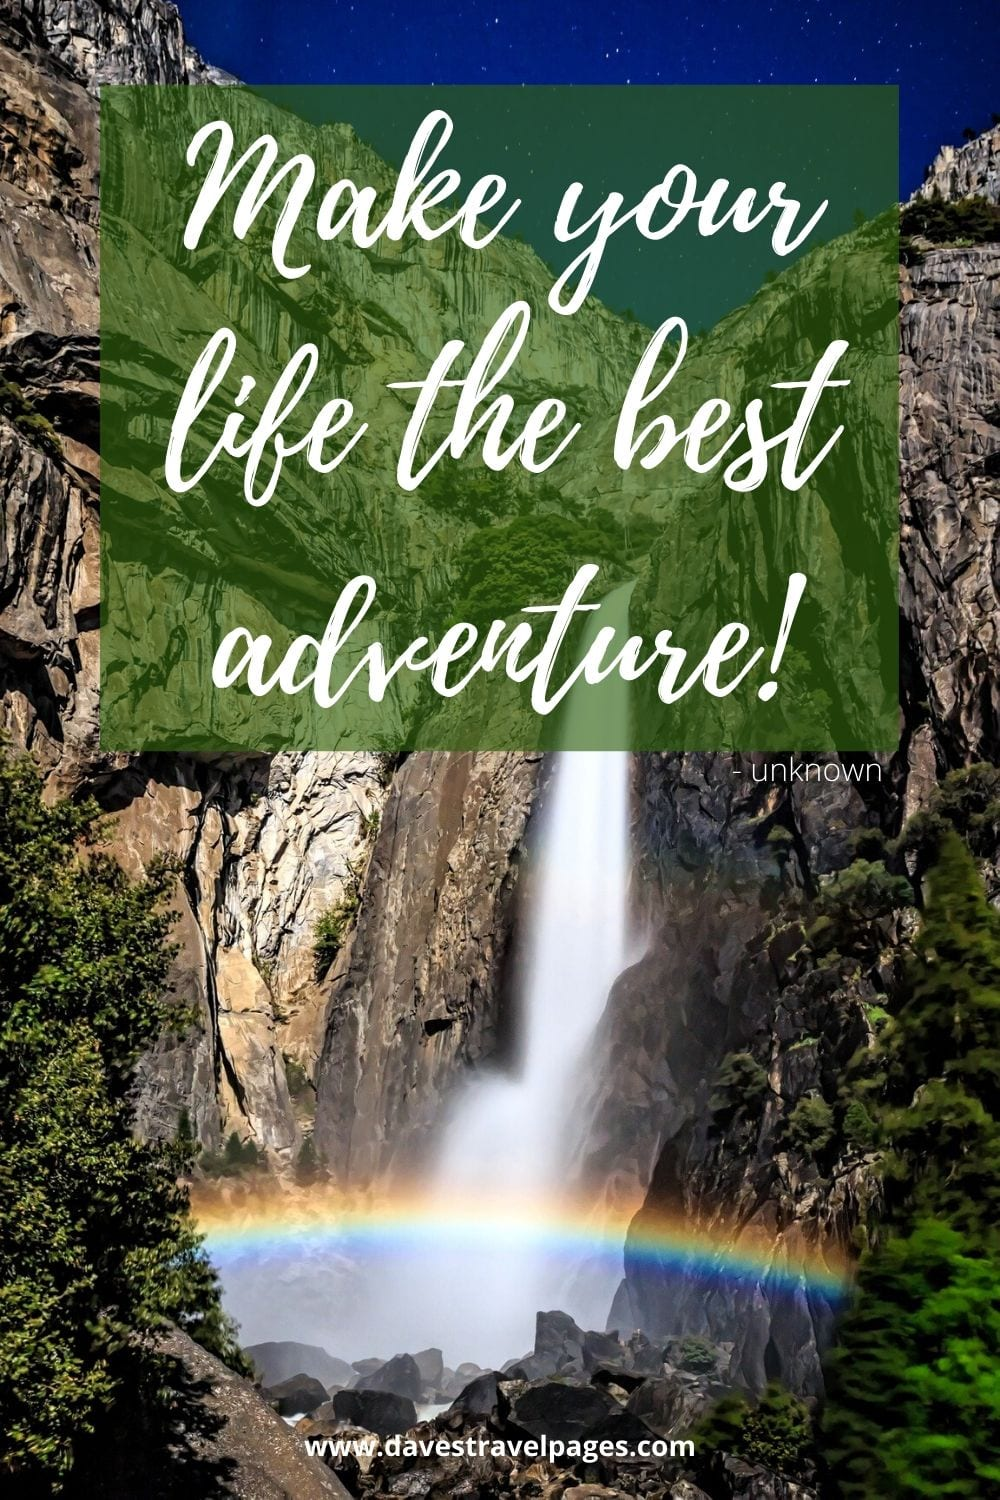 Quotes about travel and adventure: Make your life the best adventure!